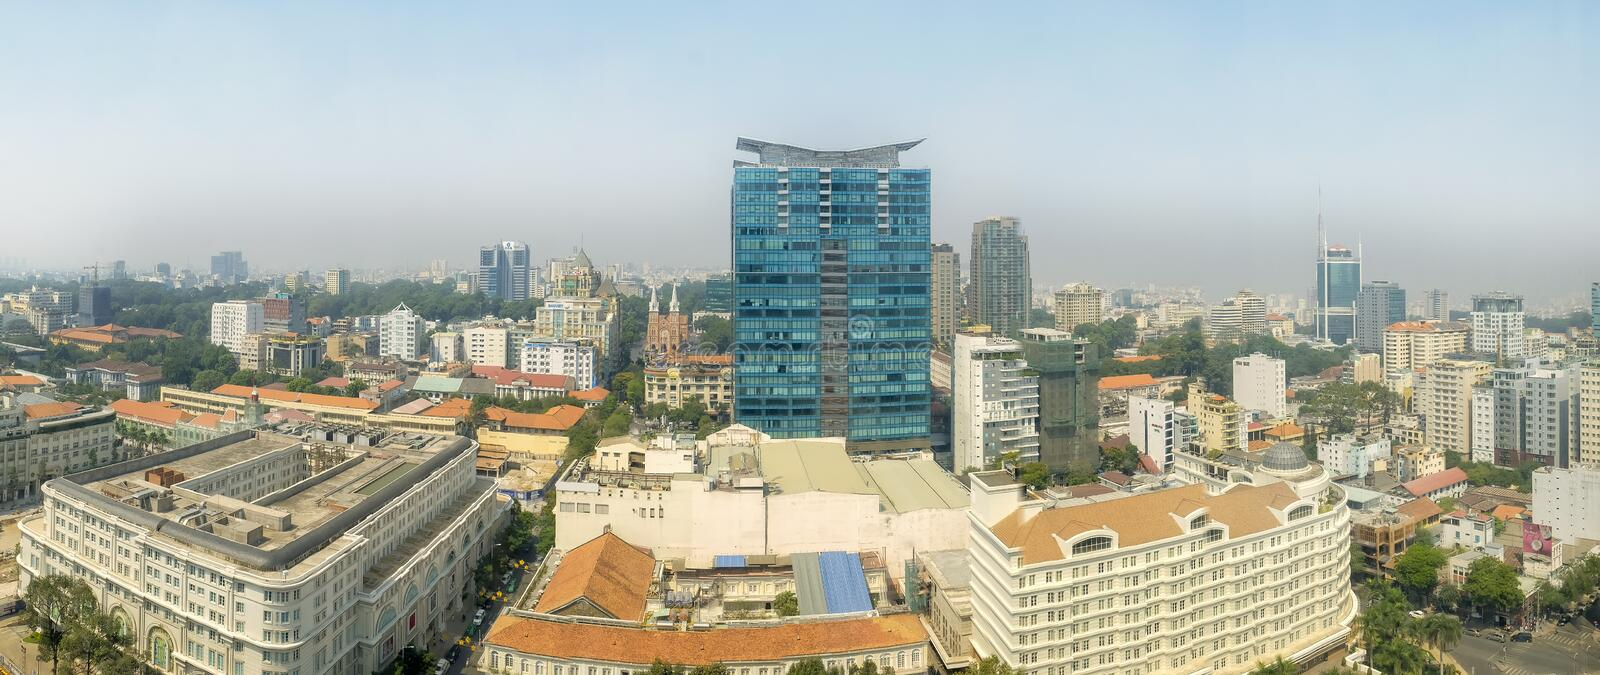 Ho Chi Minh City Panoramic-Mening, Vietnam royalty-vrije stock fotografie